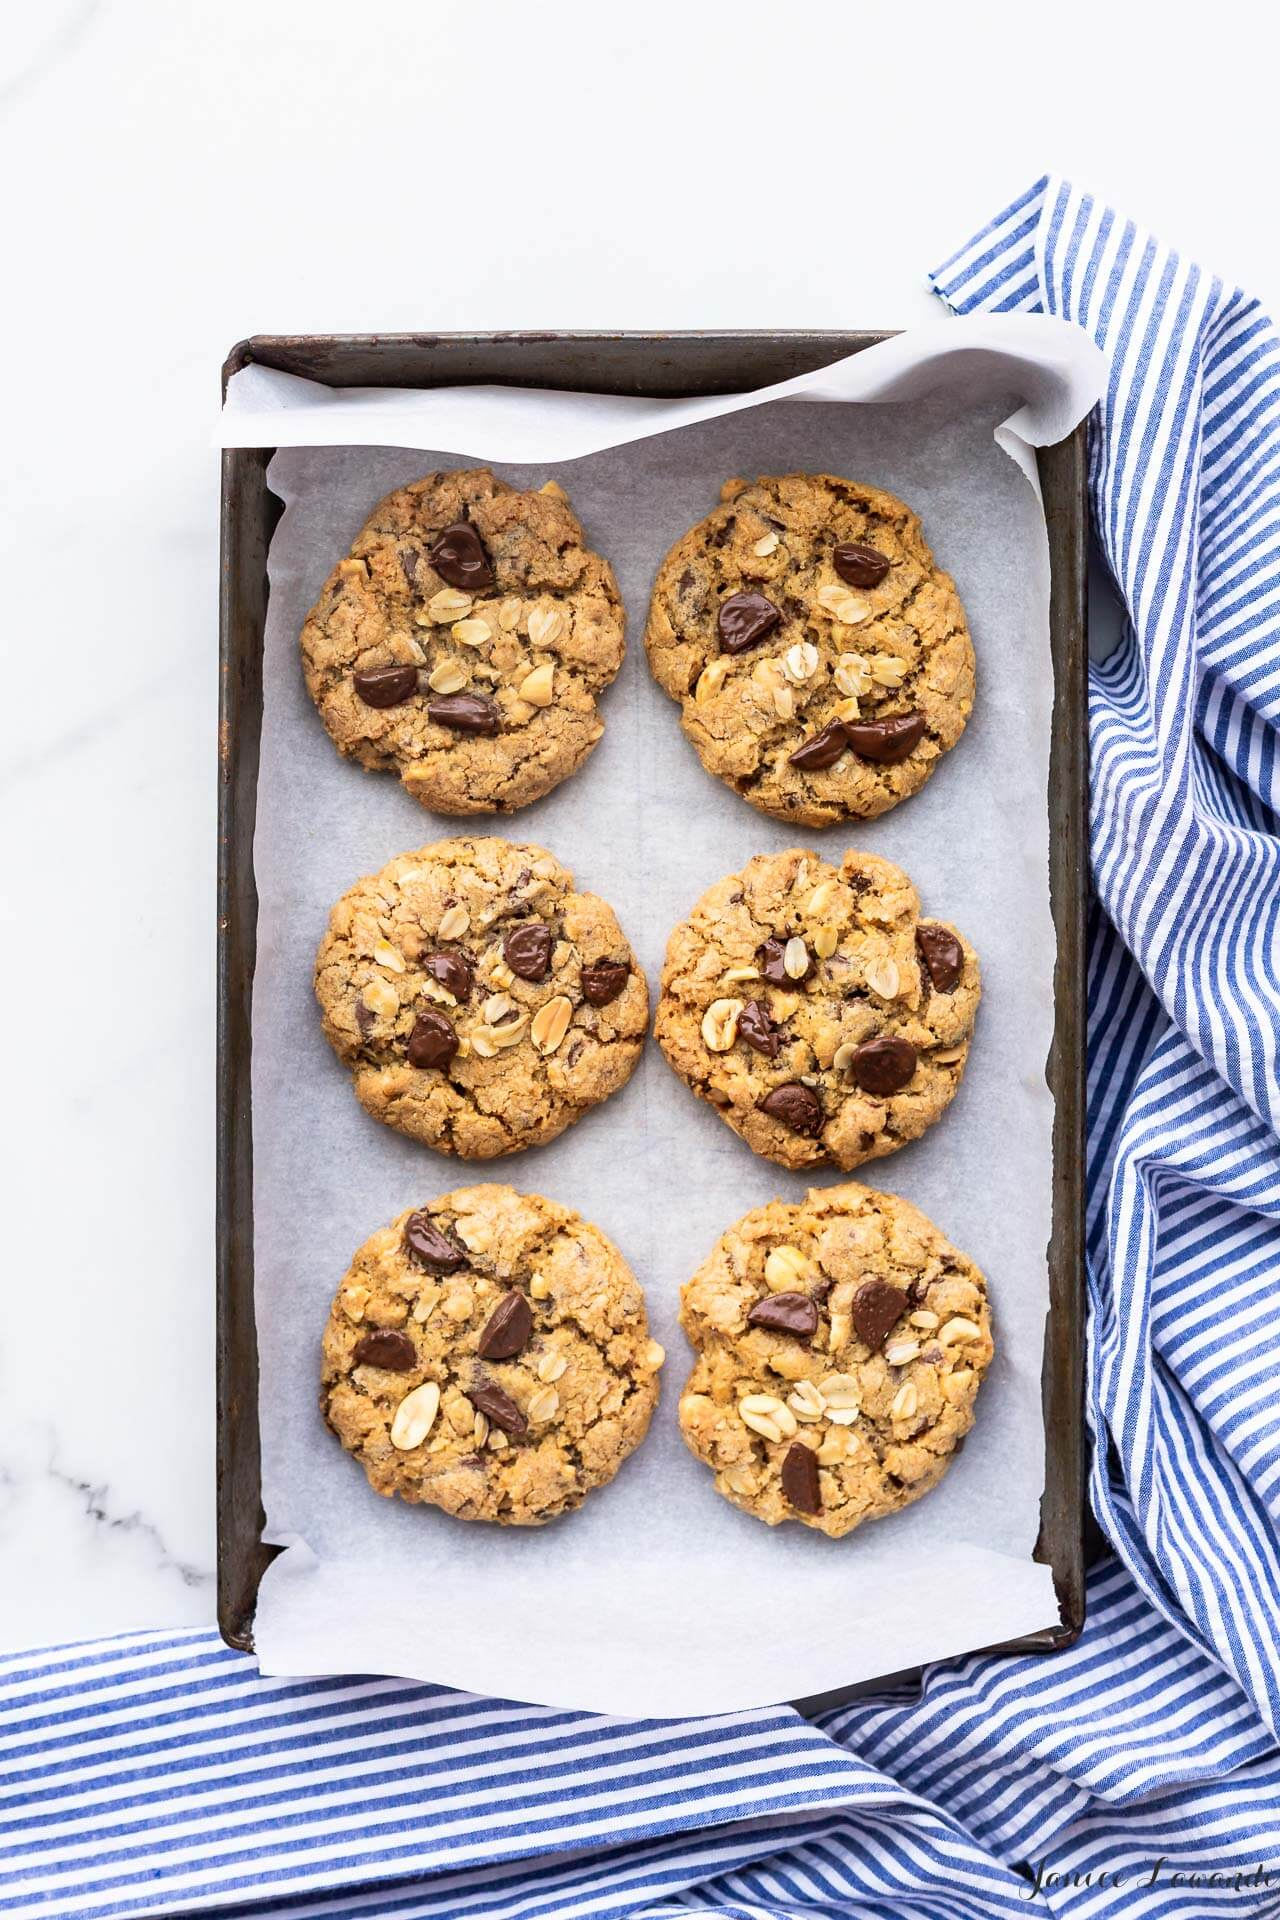 Freshly baked thick chewy oatmeal chocolate cookies with peanuts on a dark cookie sheet lined with parchment and a striped linen